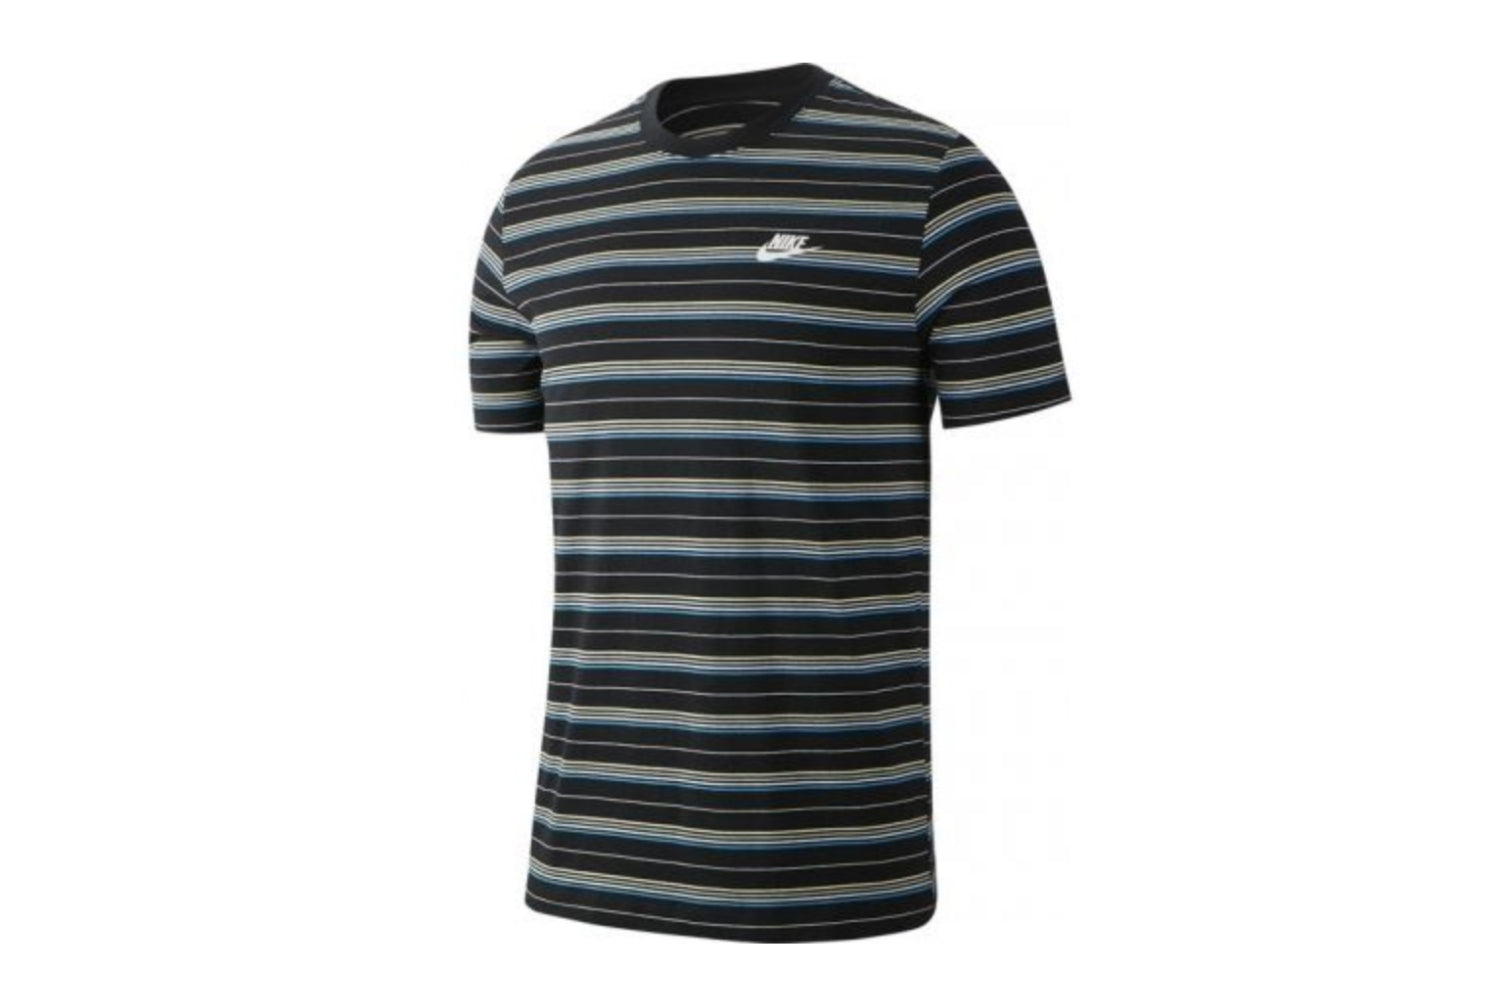 NSW Stripe Shirt